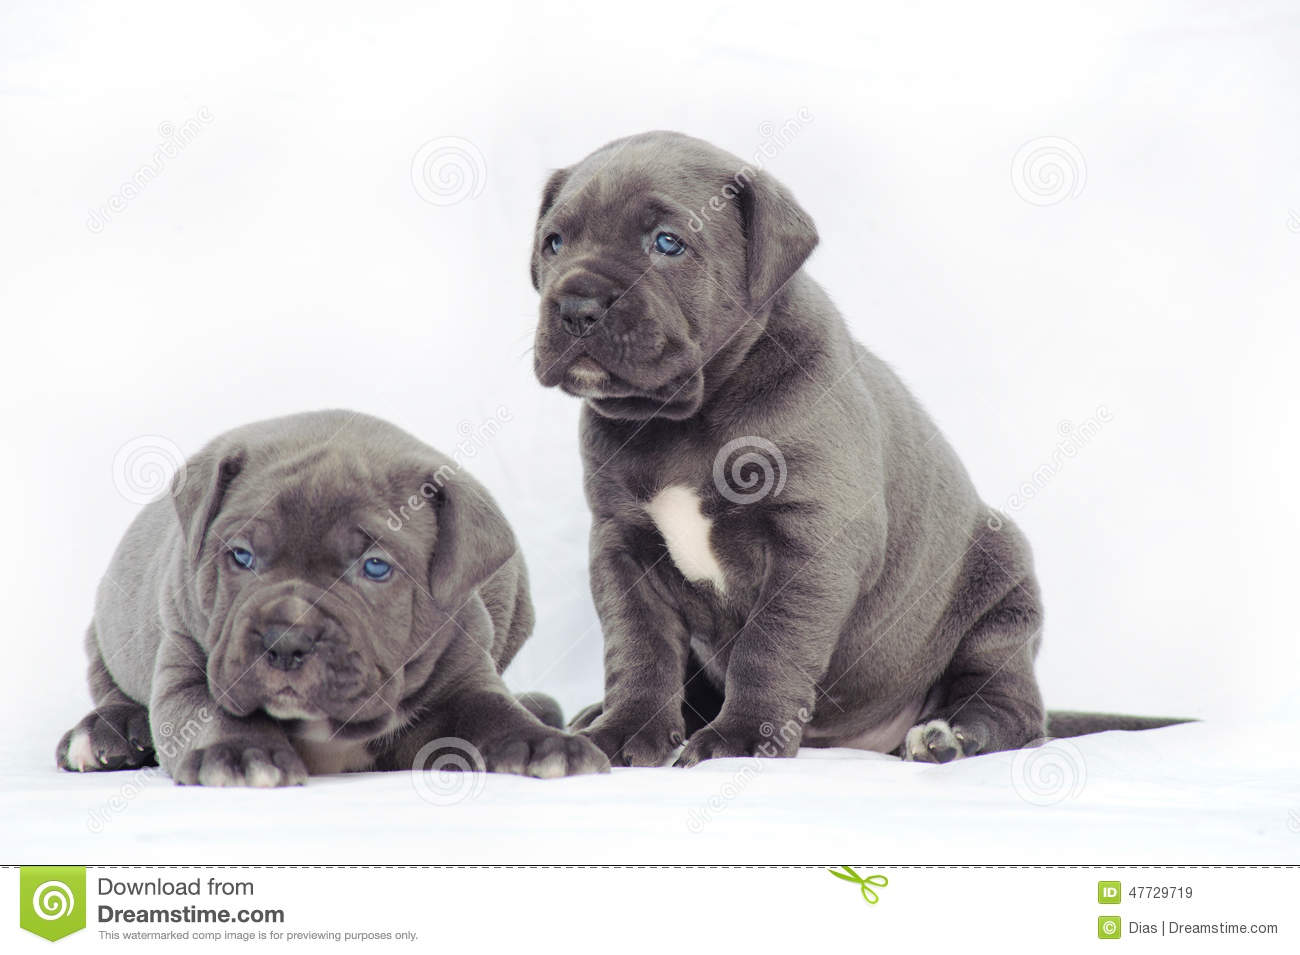 Grey cane corso puppies stock image. Image of young, breed ...  Grey